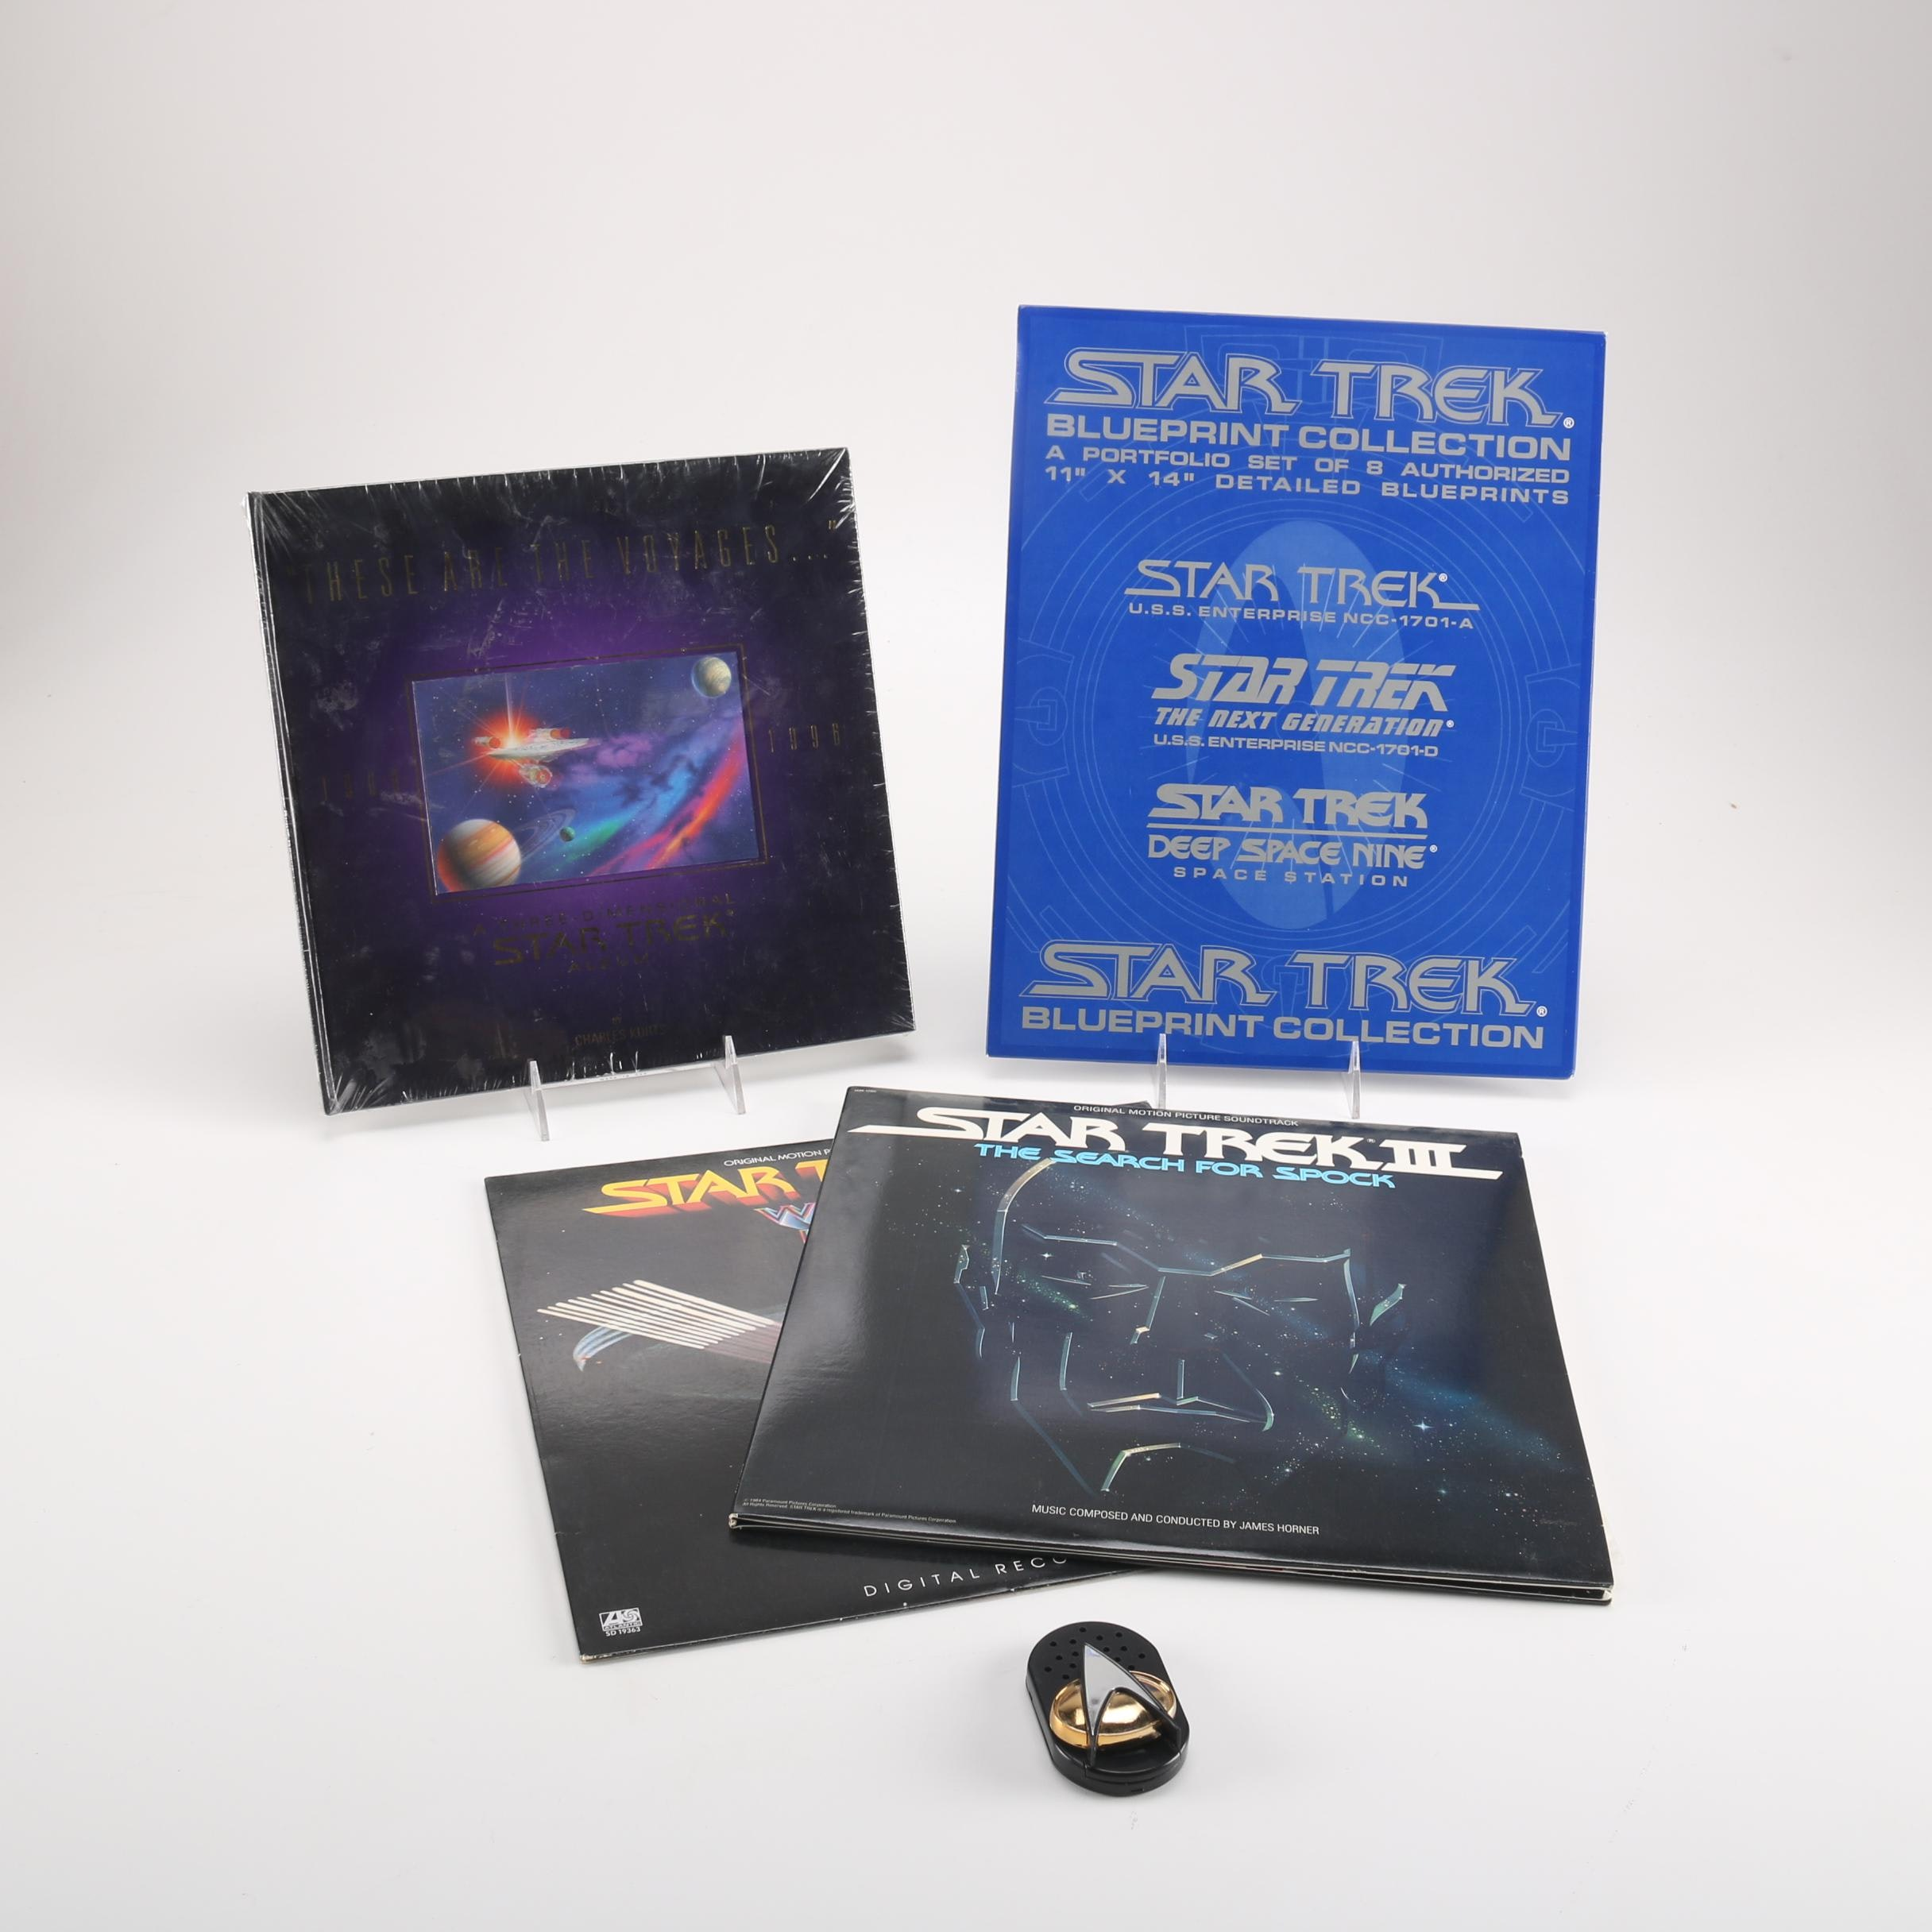 """Star Trek"" Vinyl LP Soundtracks, Blueprints and 3-D Picture Book"